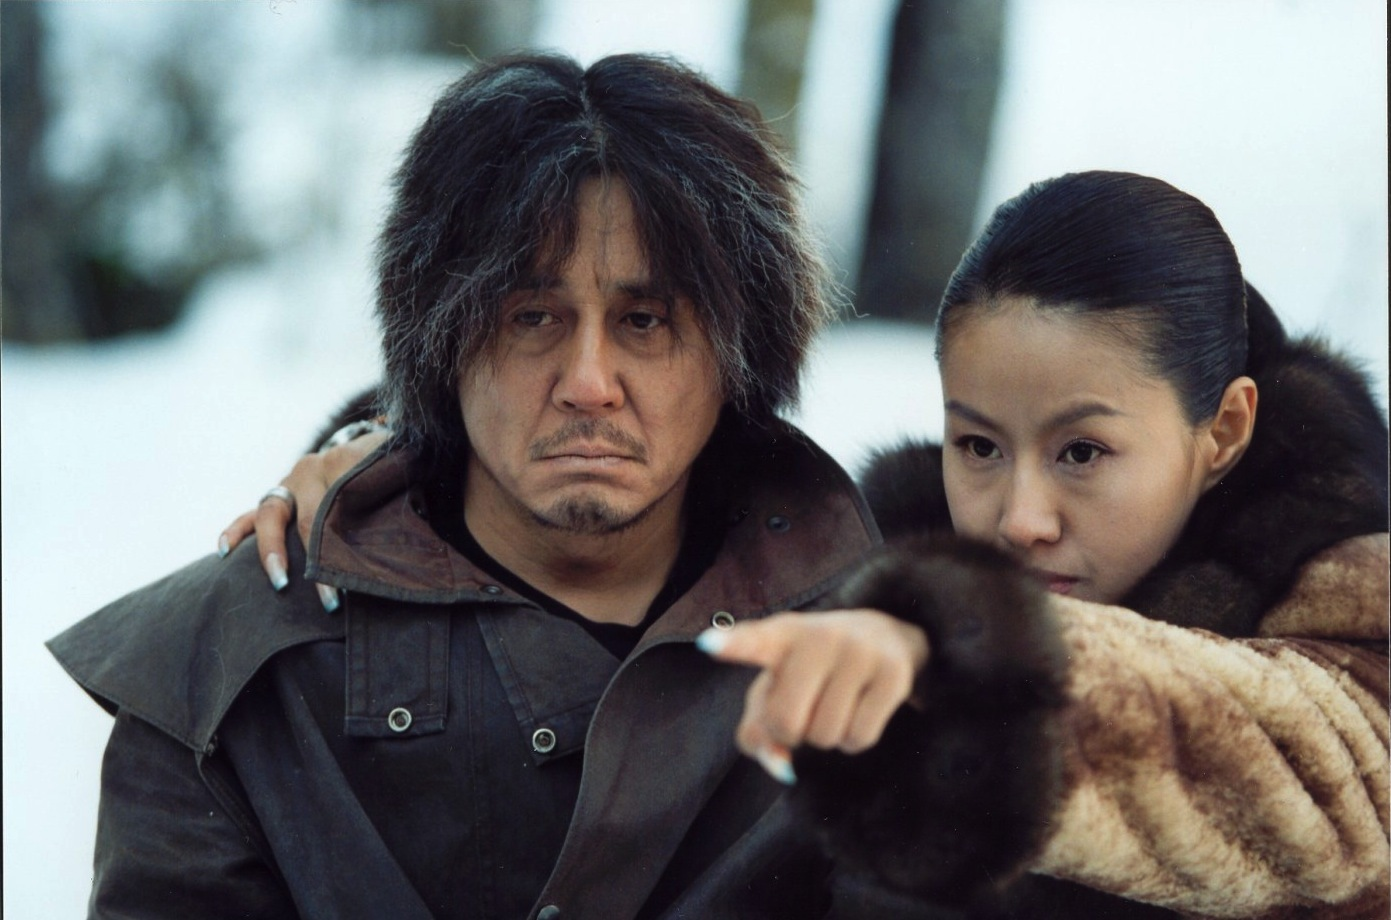 Min-sik Choi and Seung-shin Lee in Oldeuboi (2003)